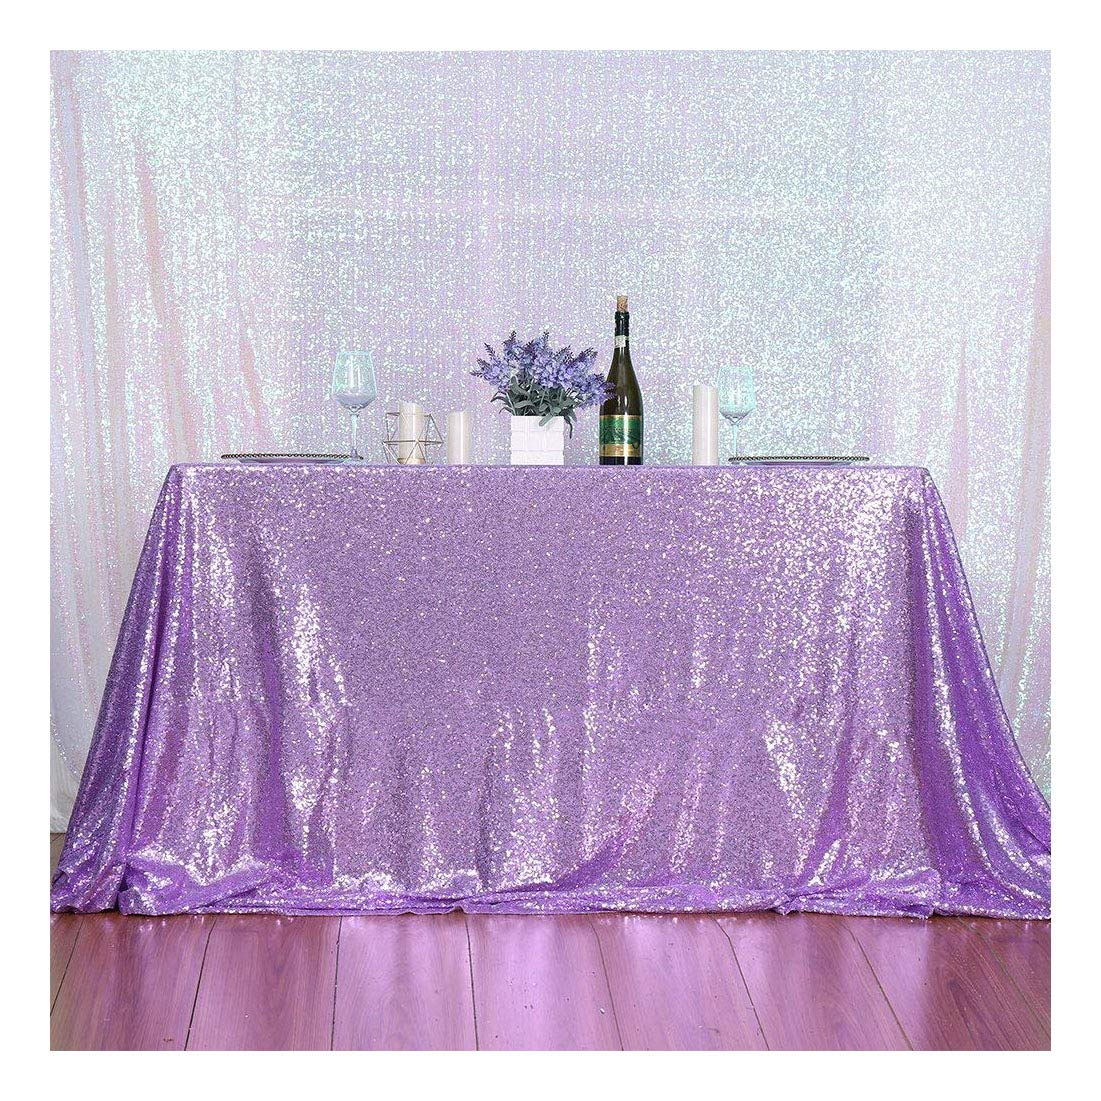 3e Home 50×80'' Rectangle Sequin Tablecloth for Party Cake Dessert Table Exhibition Events, Lavender